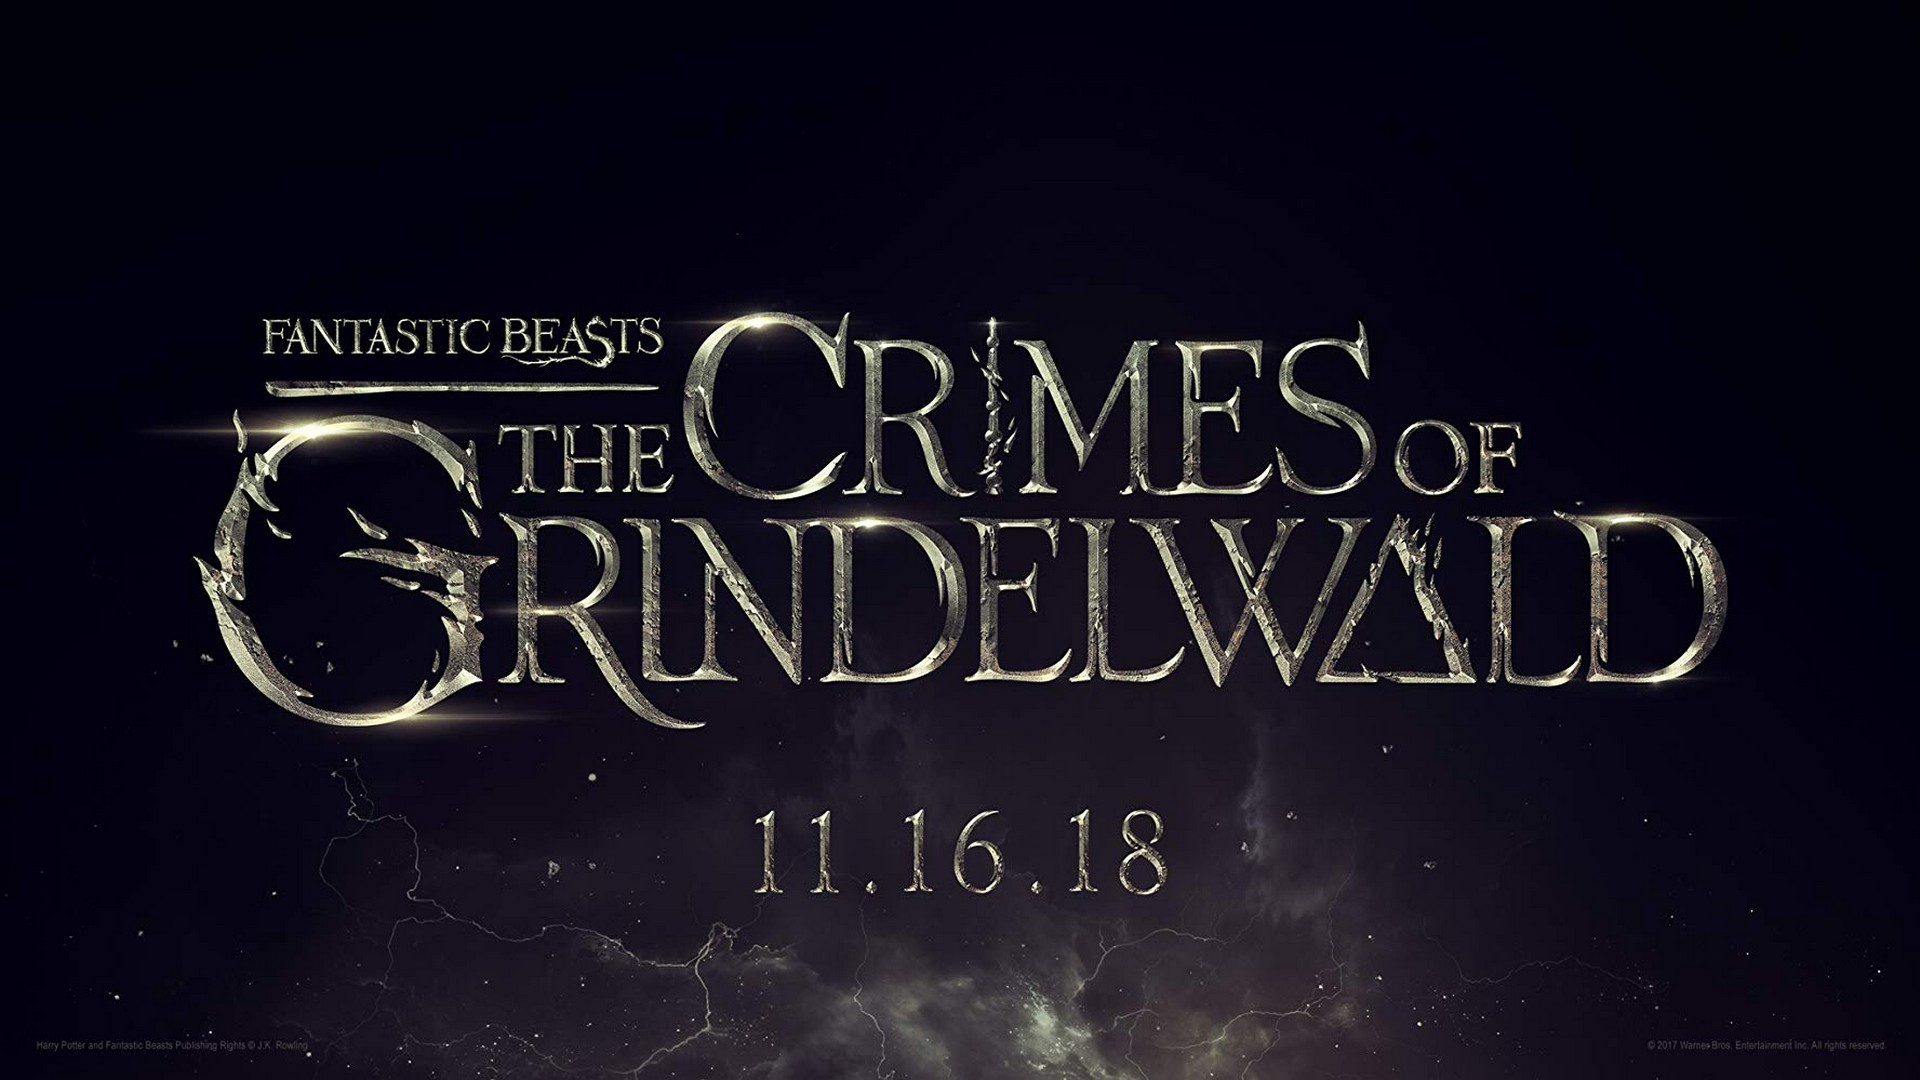 Fantastic Beasts The Crimes of Grindelwald 2018 Poster Wallpapers